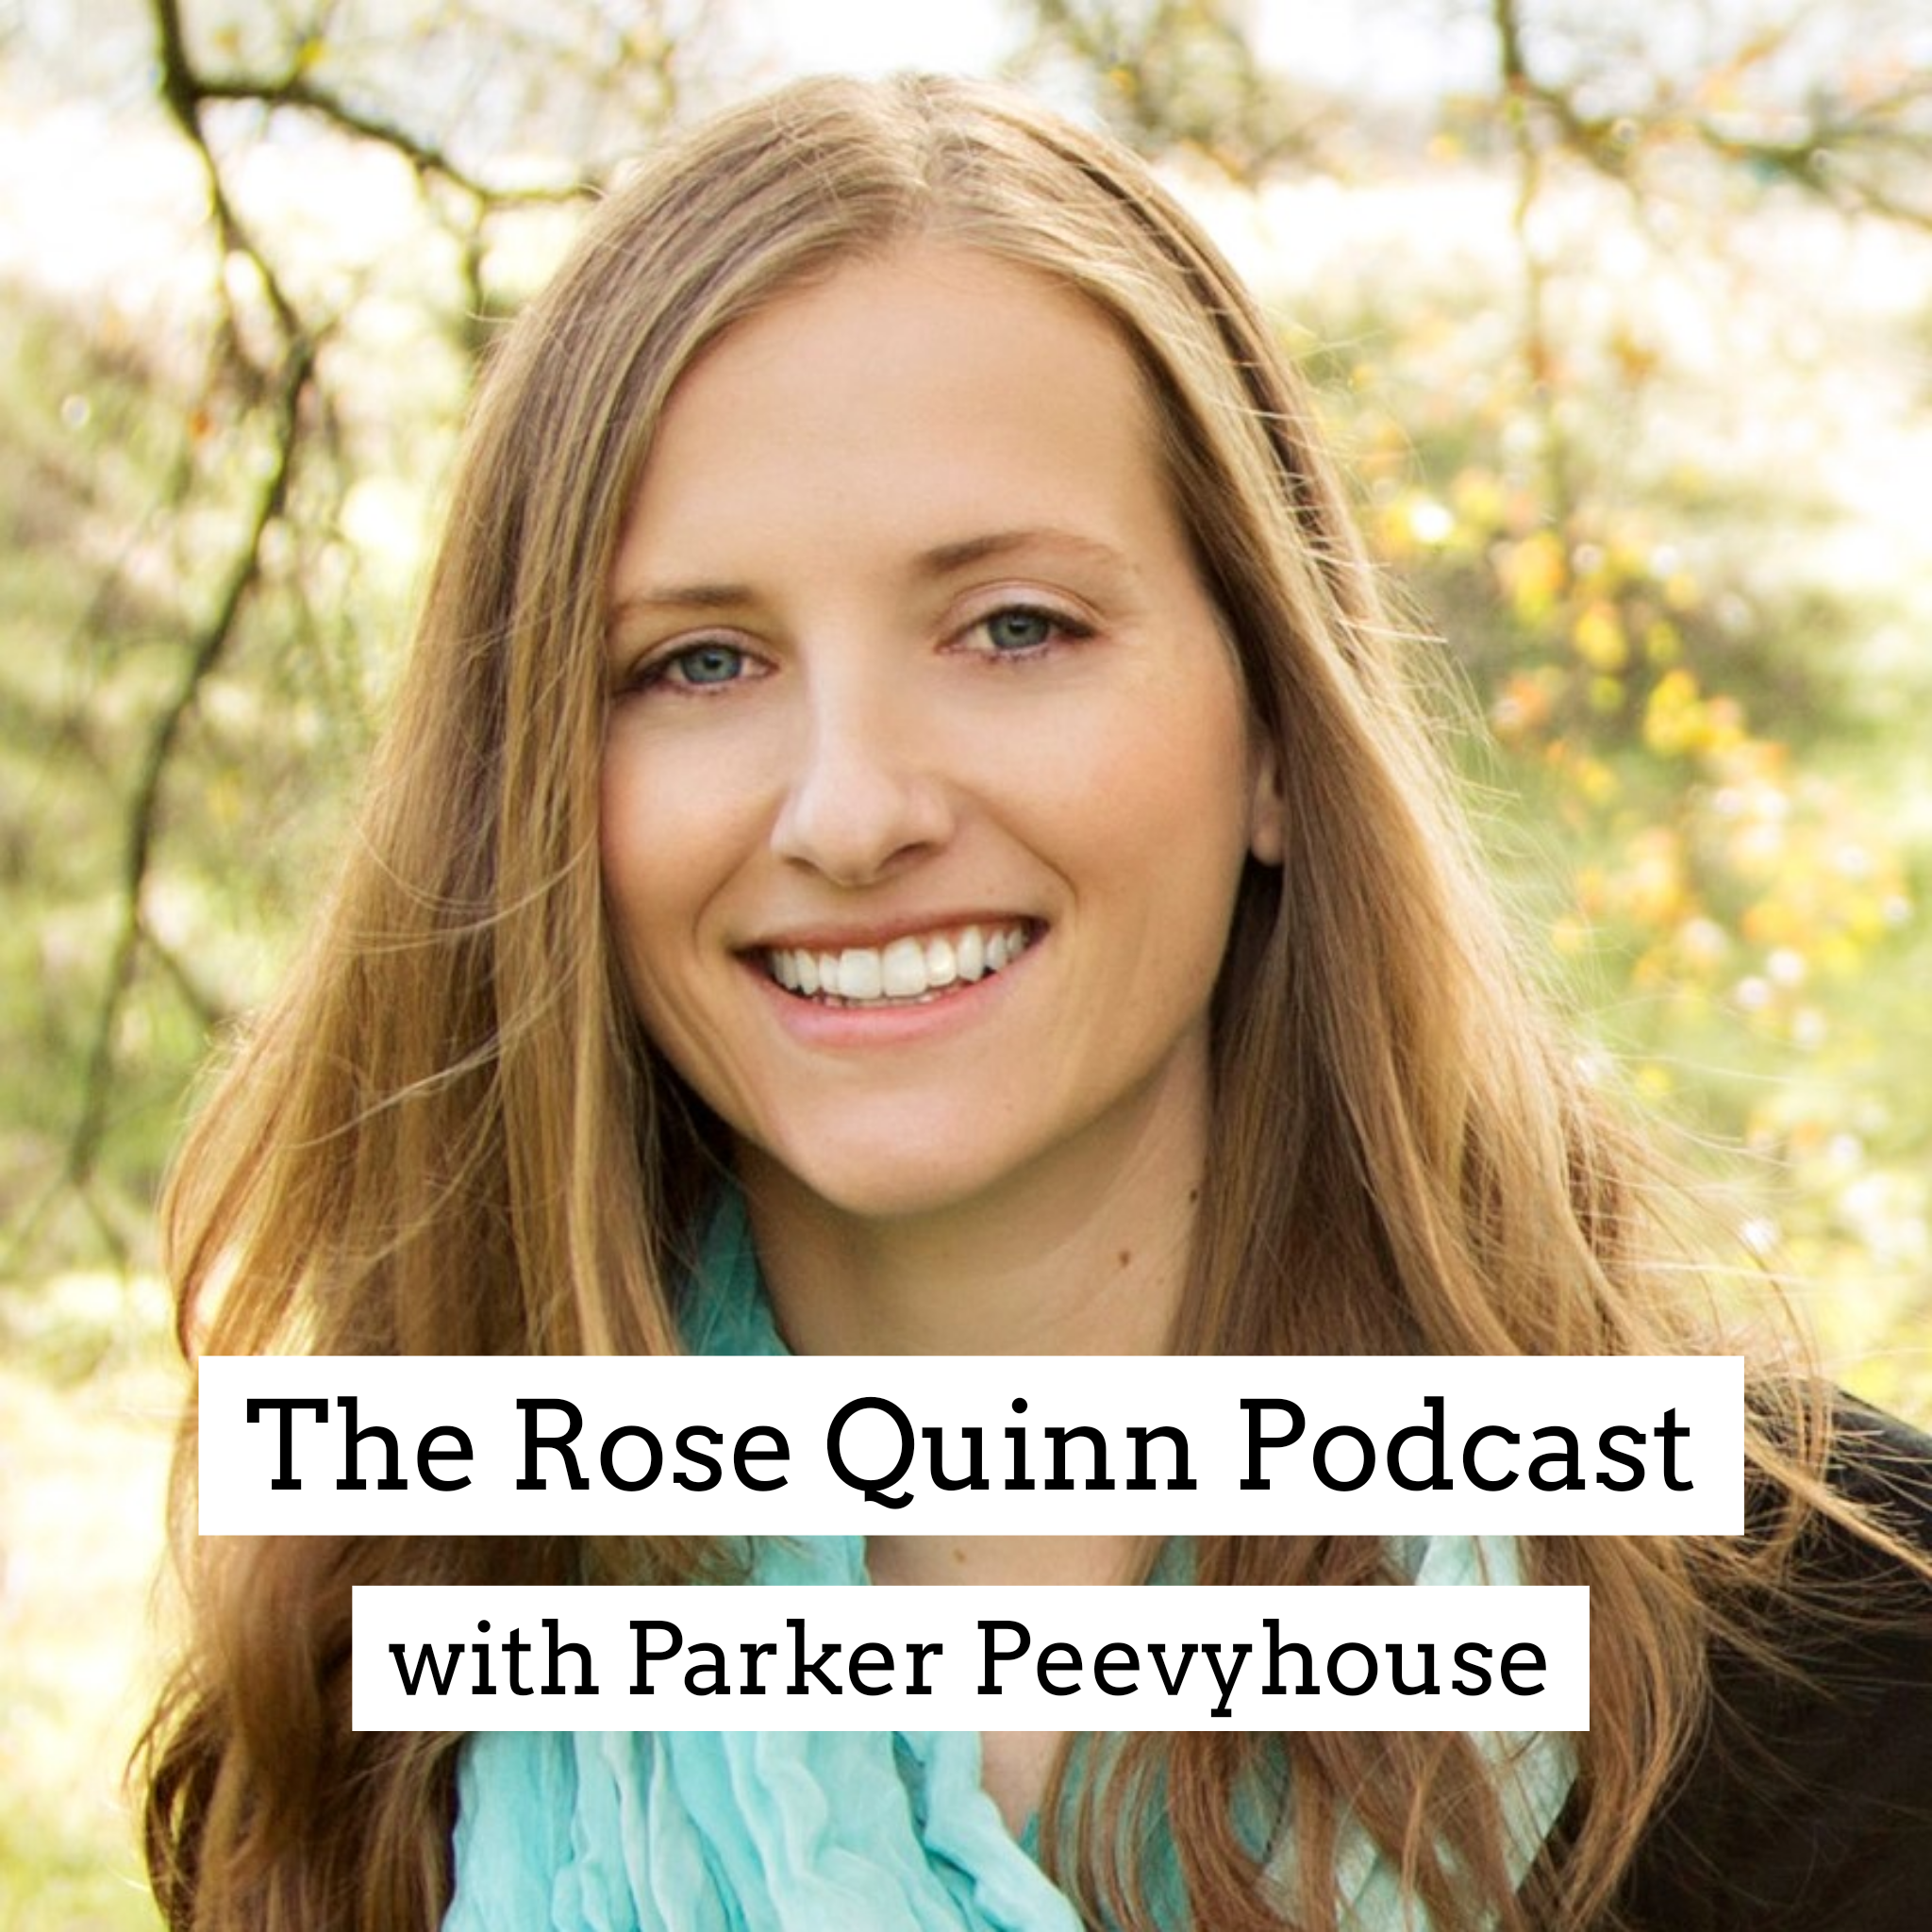 Parker-peevyhouse-podcast